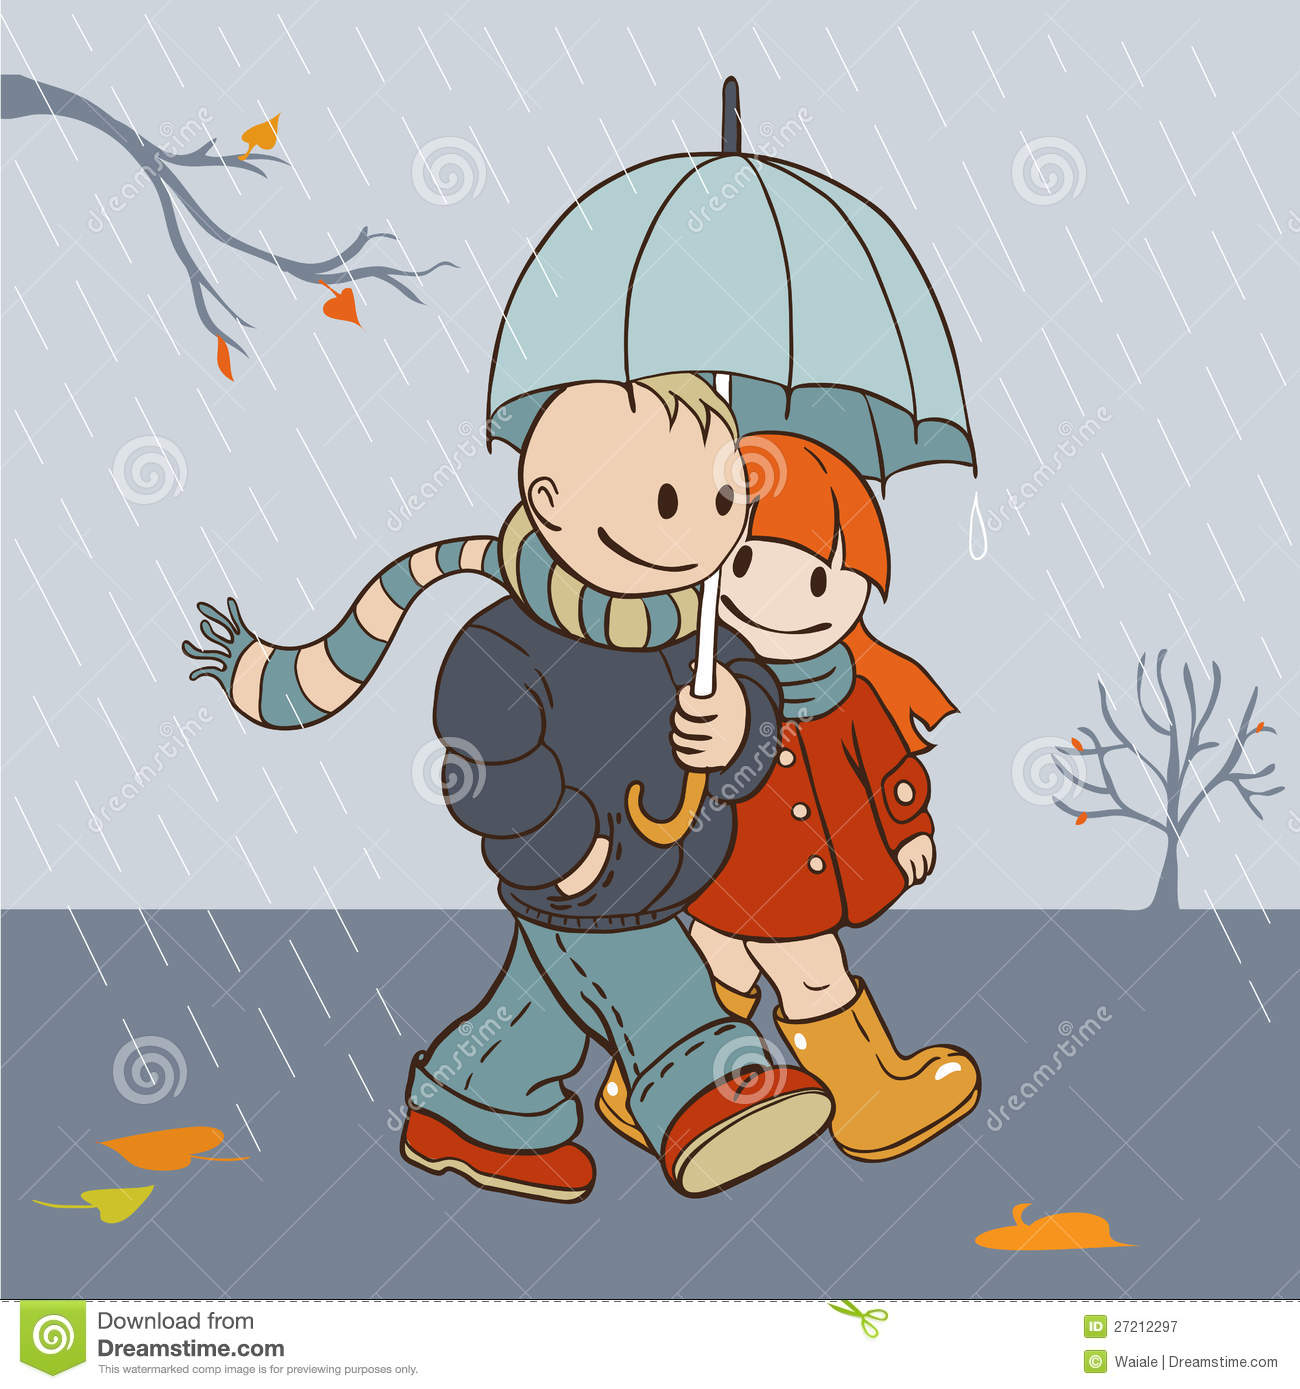 Rainy Day Boarder And Frame Clipart.